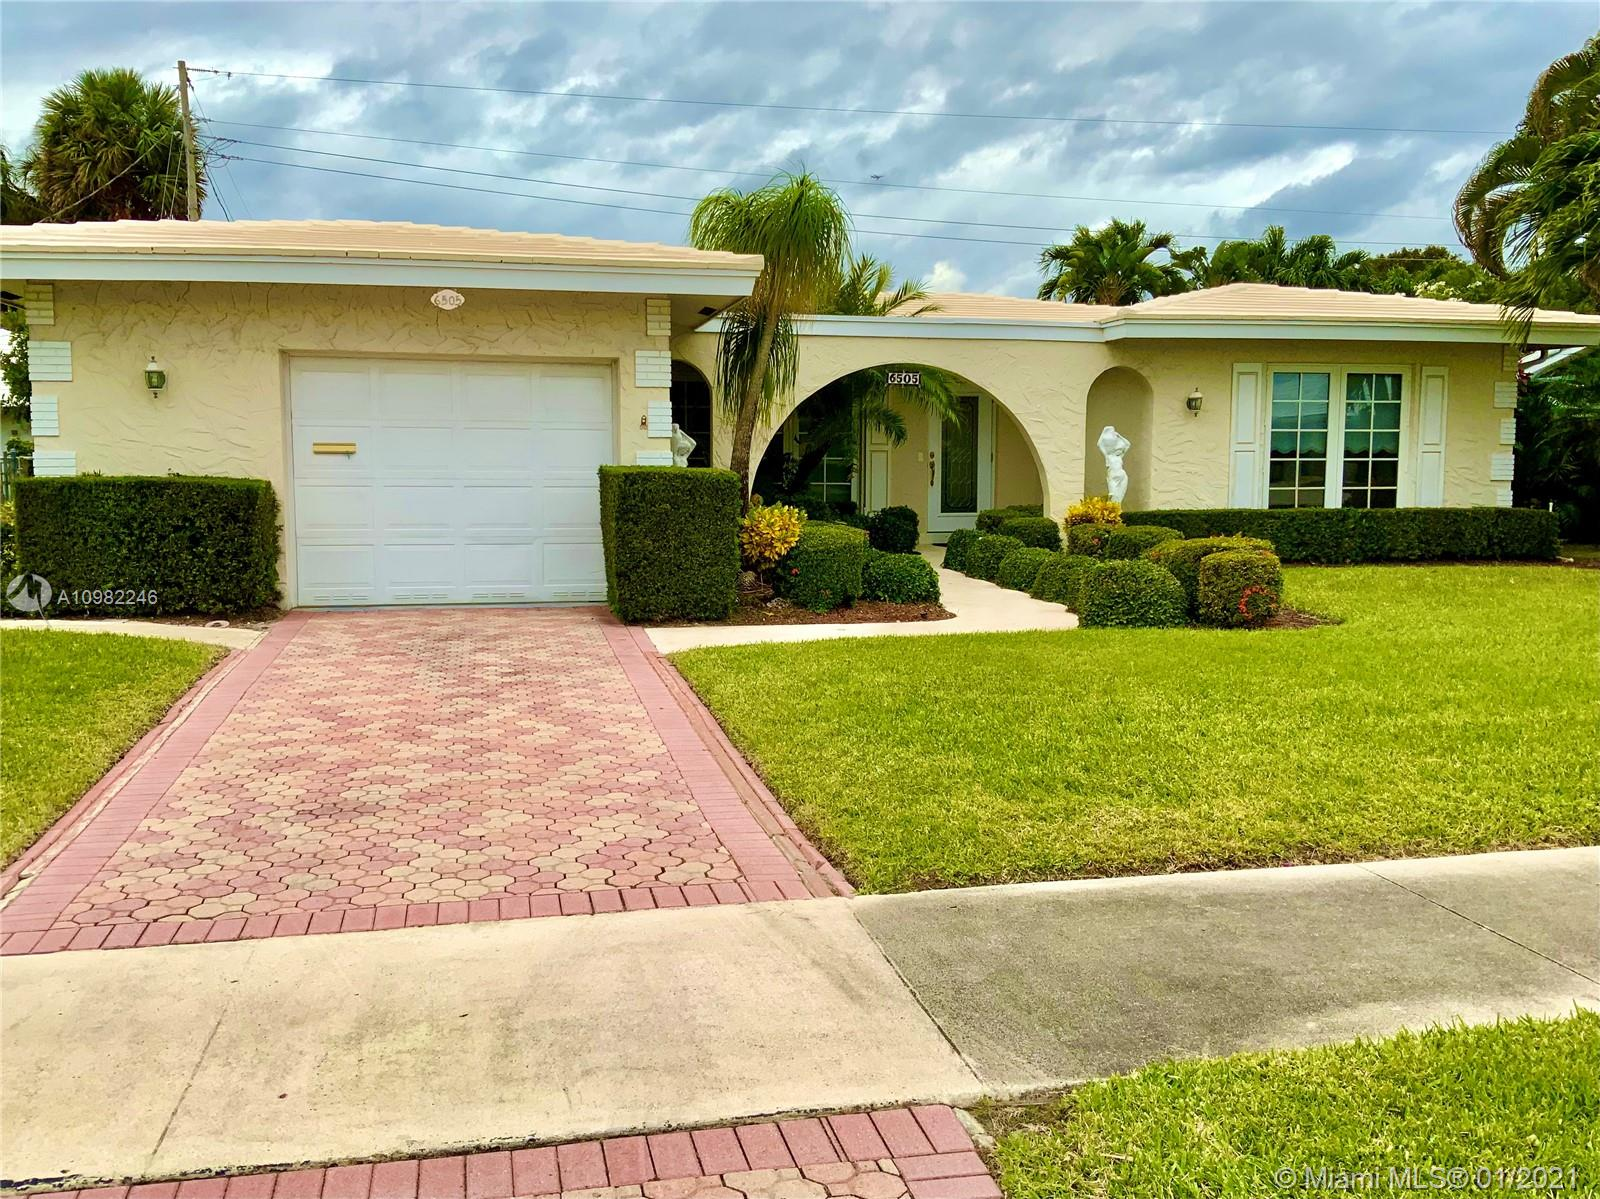 OPEN HOUSE 1/16 & 1/17 11am-3pm